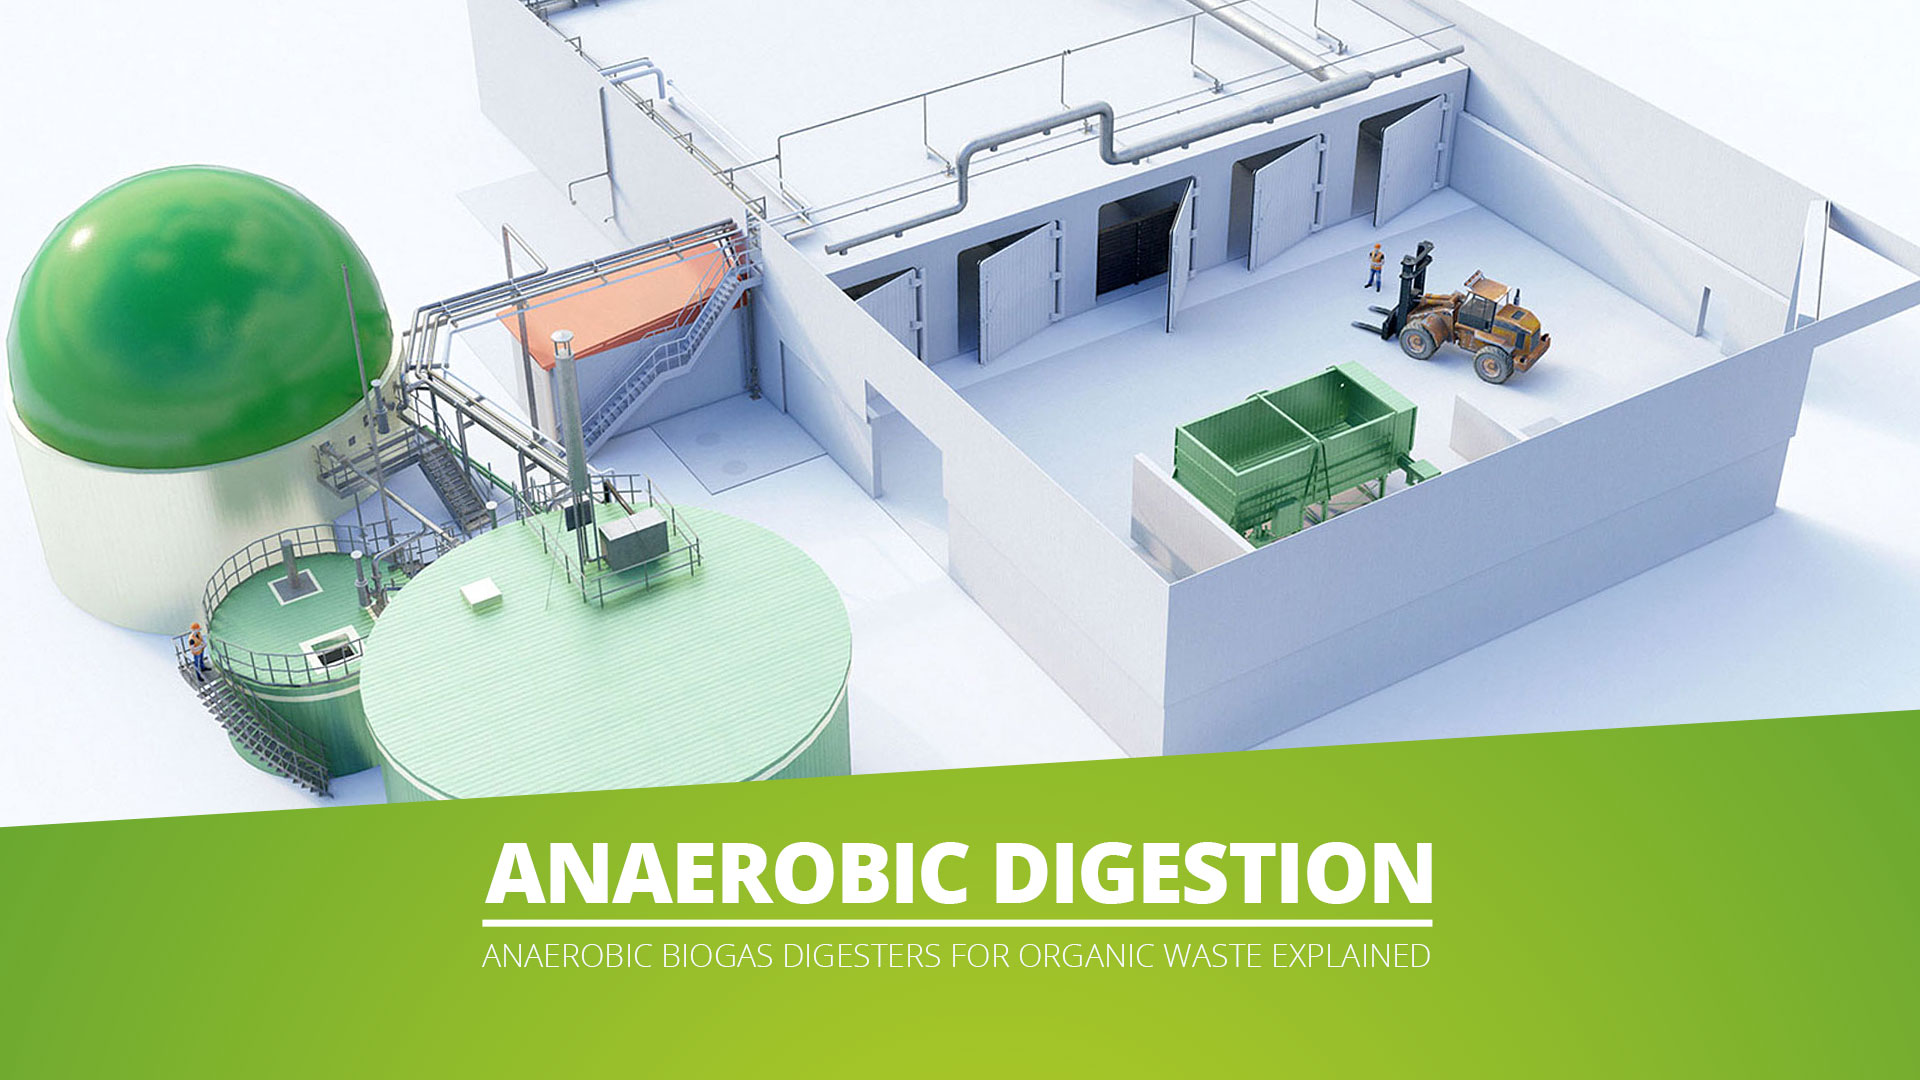 Anaerobic Digestion explained - Biogas digester